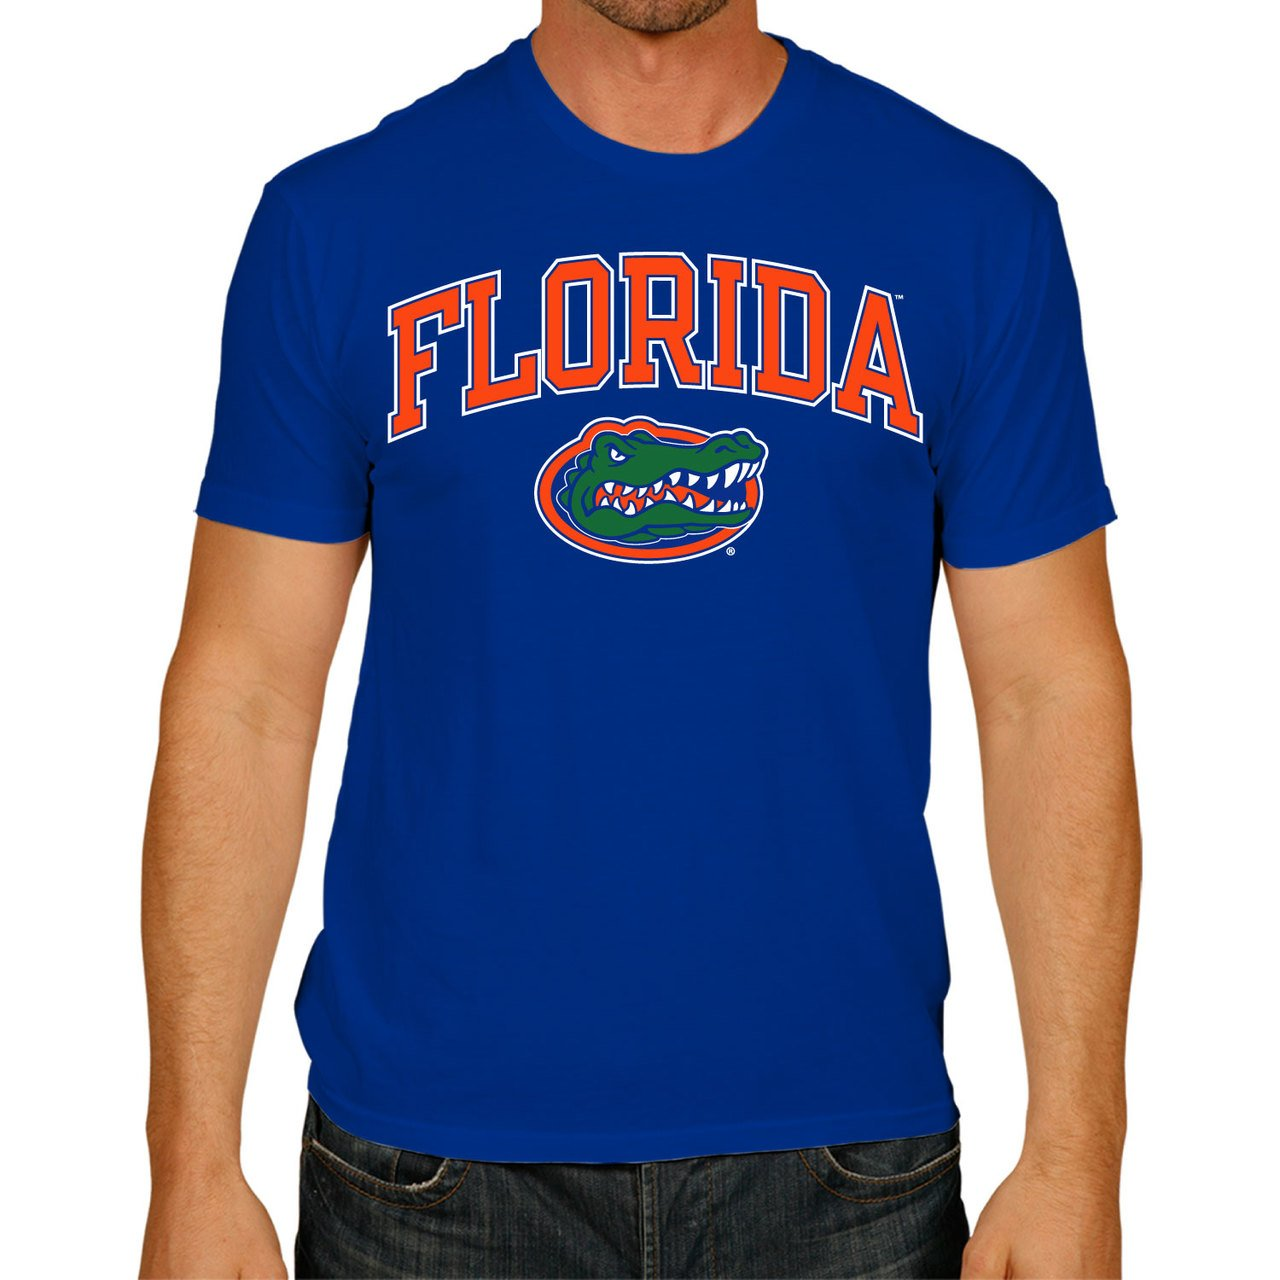 Campus Colors Florida Gators Adult Arch & Logo Soft Style Gameday T-Shirt - Royal, Medium